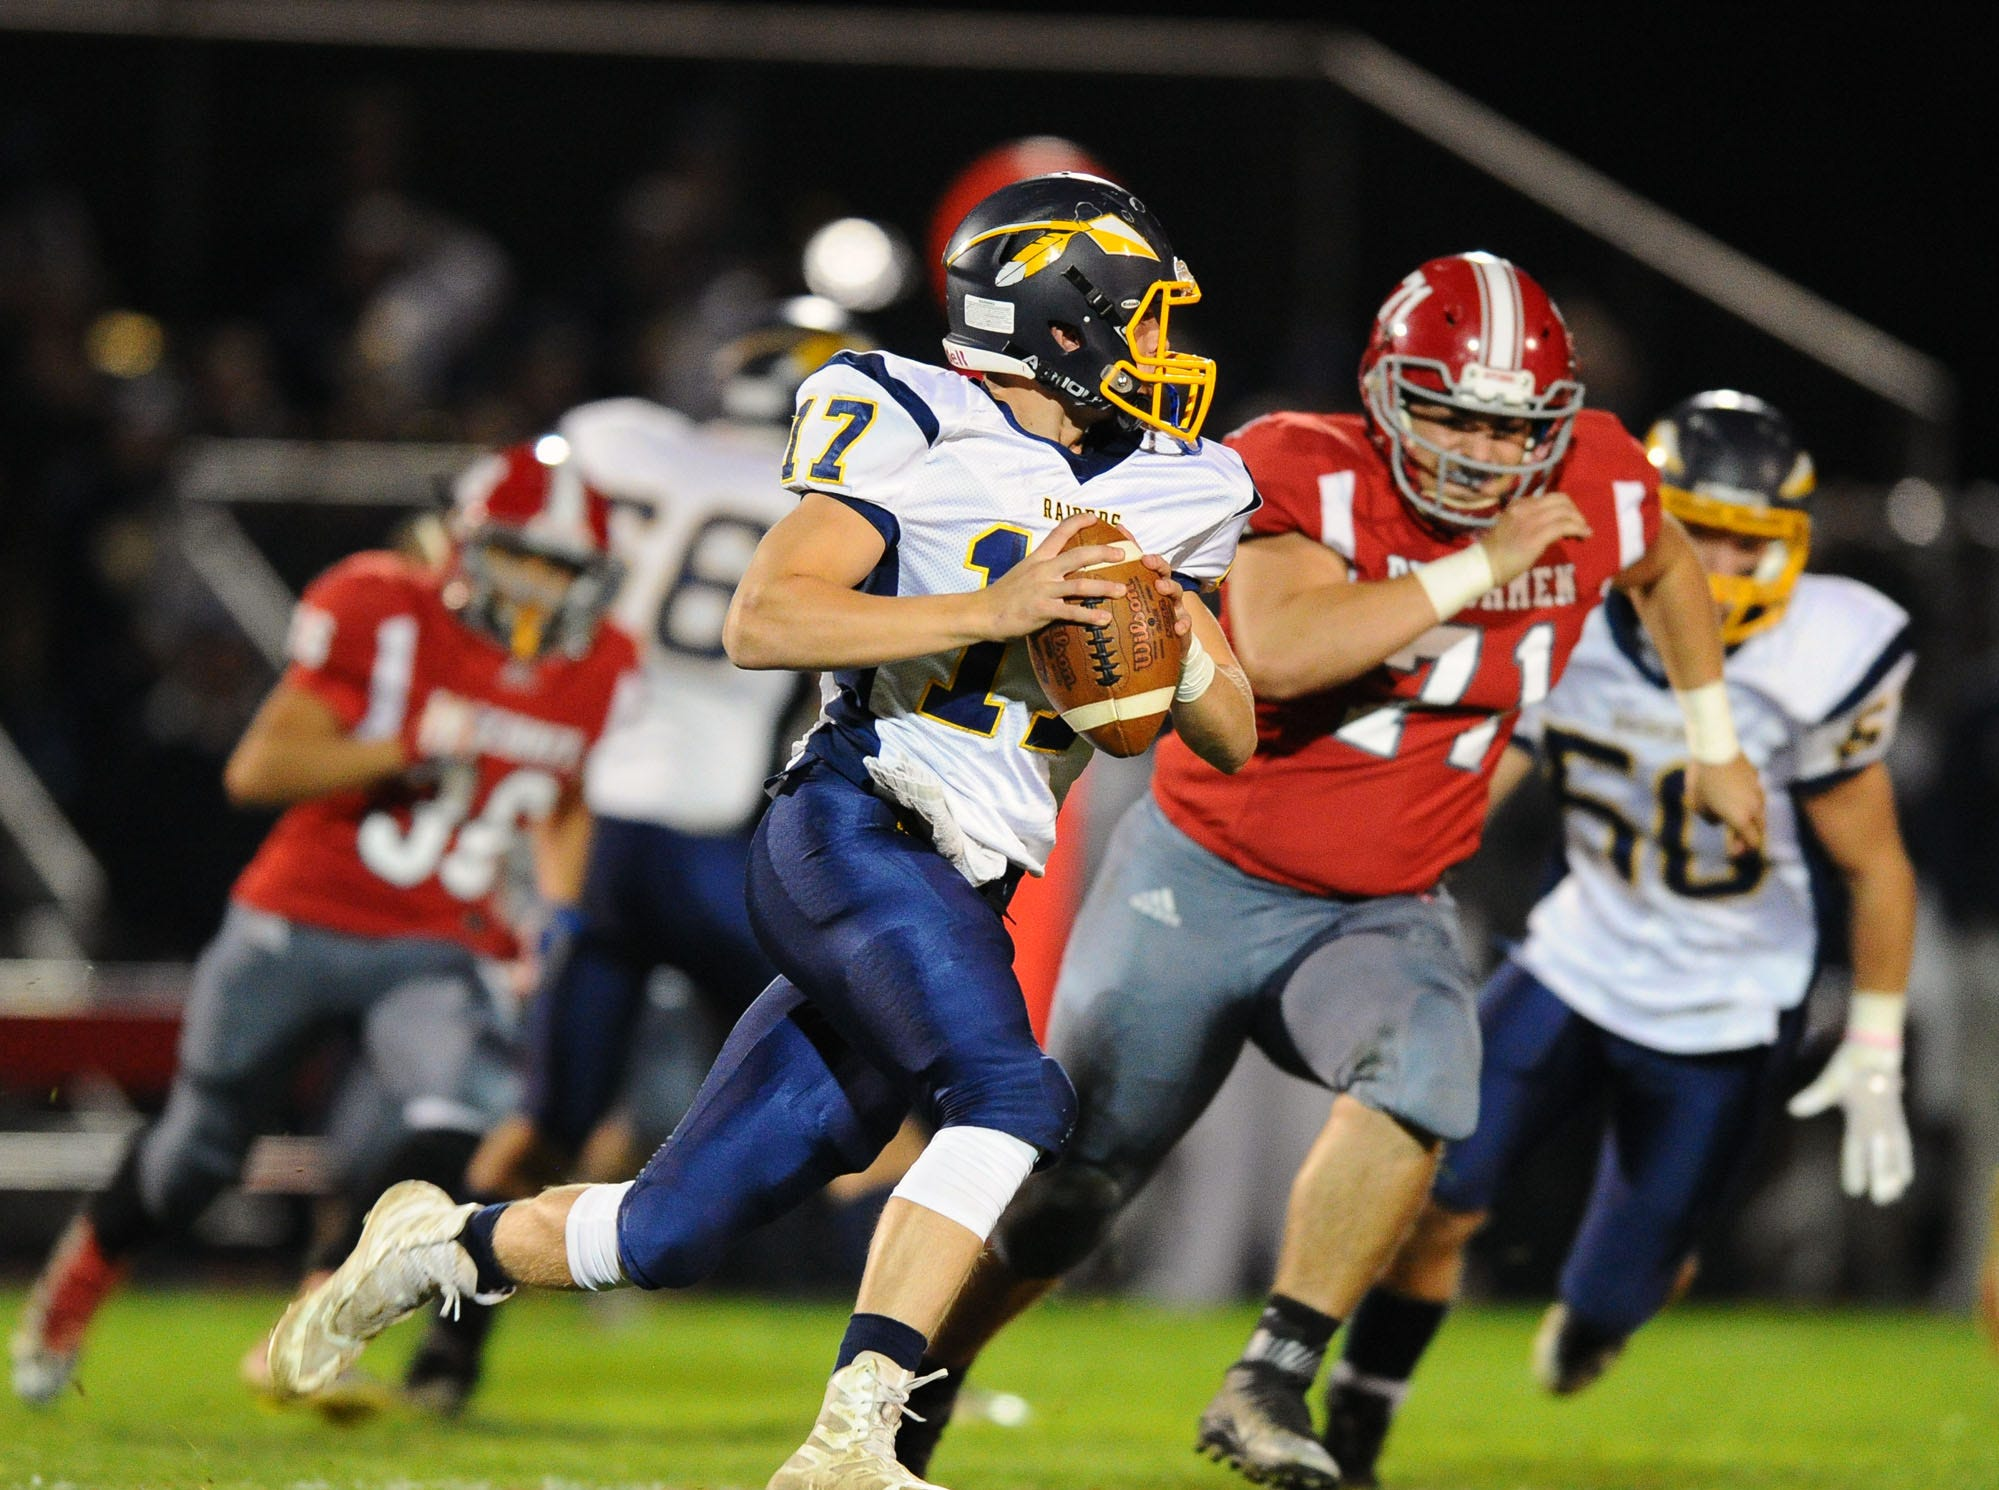 Elco QB Braden Bohannon (17) rolls out as he is chased by AC's Dion Lopez (71) during first half action in a game played Friday, Oct.19,2018 at Annville Cleona H.S.